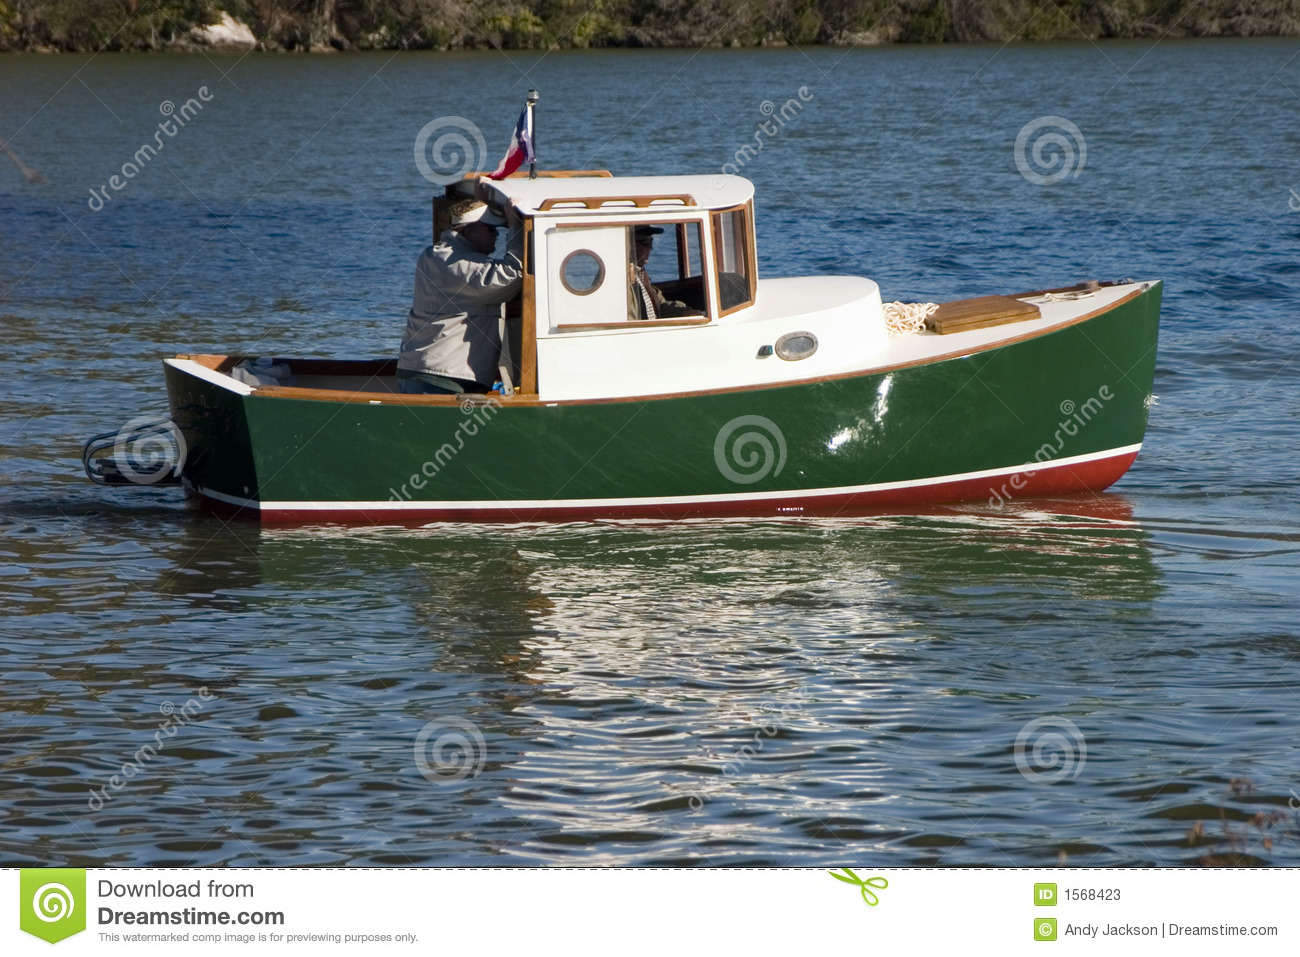 Small Boat Stock Photos - Image: 1568423